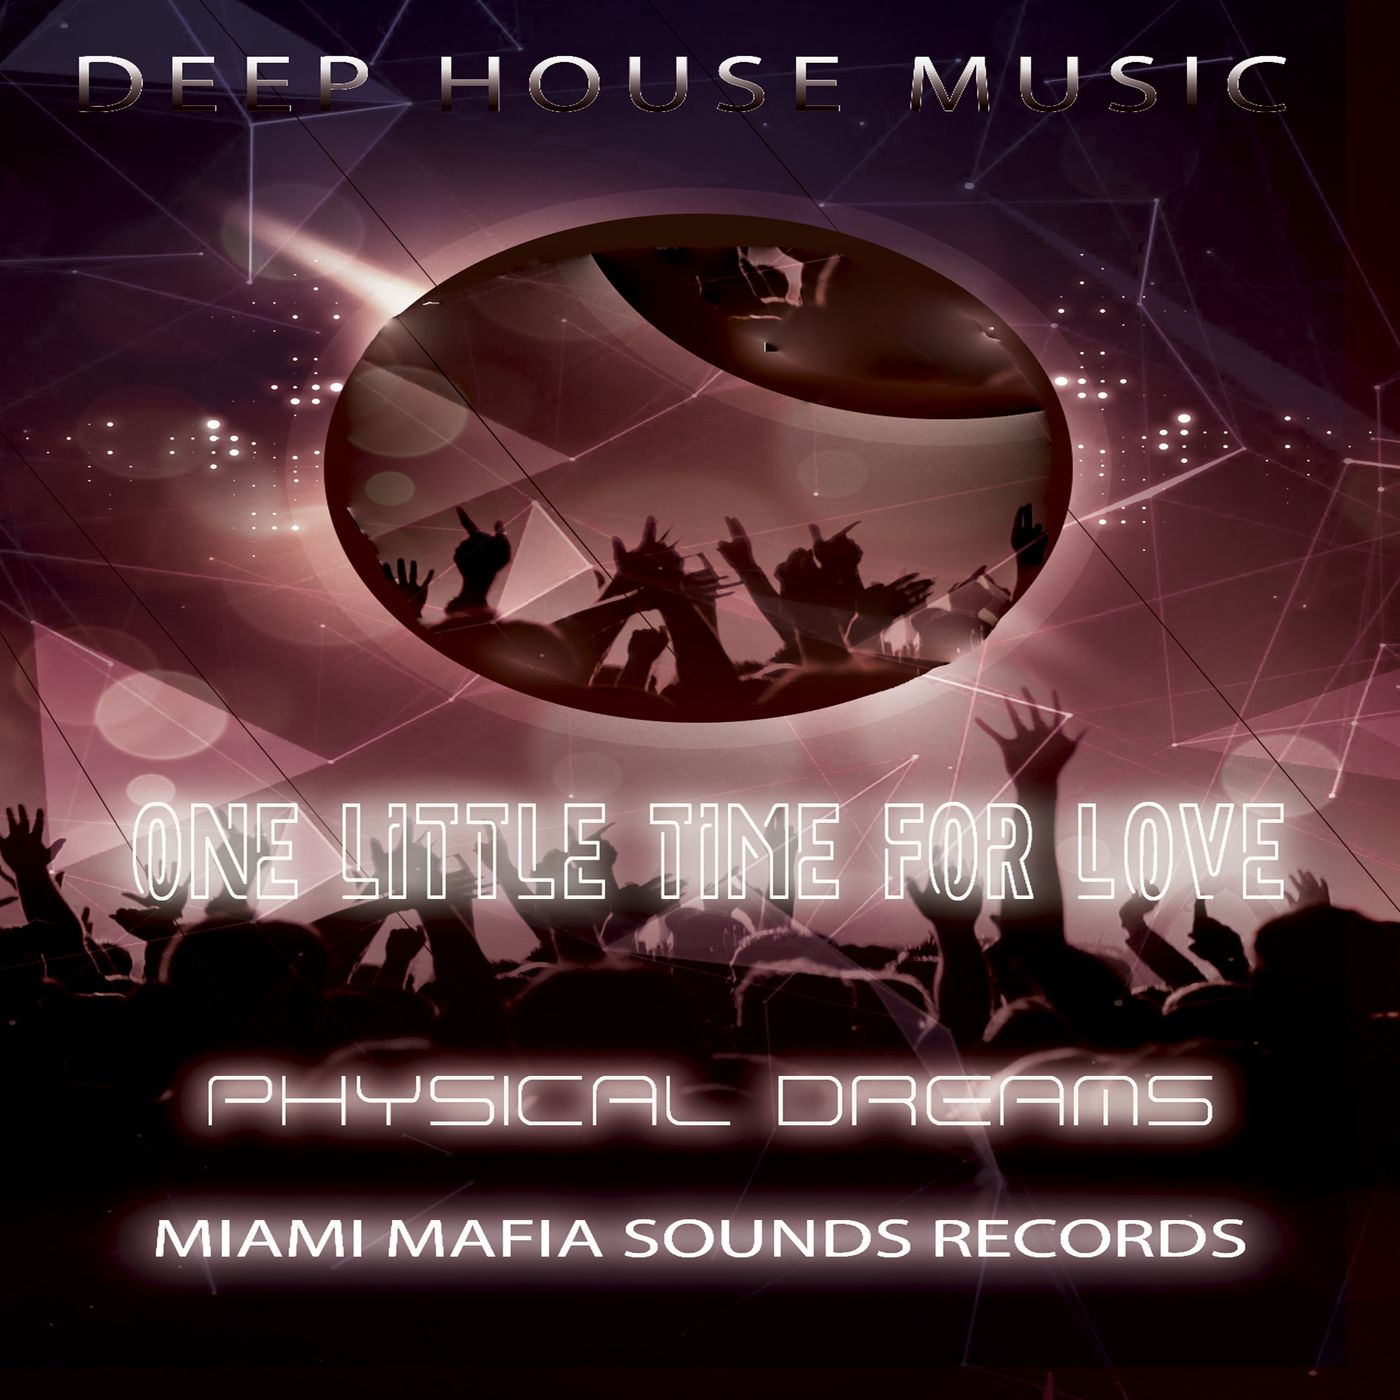 Physical Dreams - In the Midle of the Night (Original Mix)